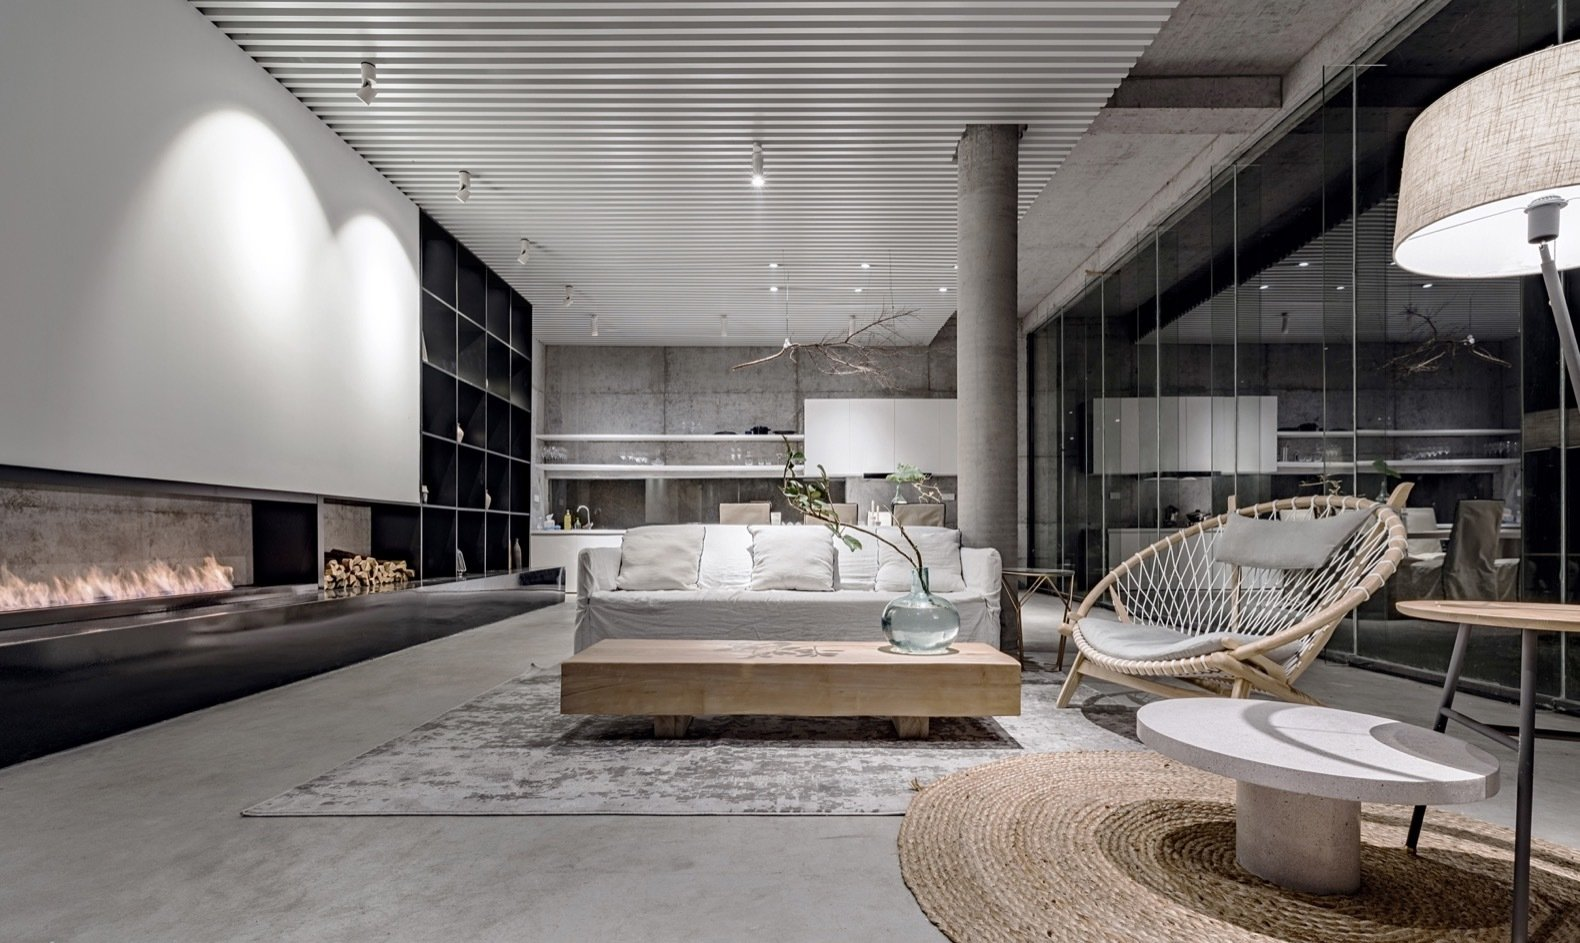 seen-at-night-the-sumptuous-living-area-features-modern-furnishings-and-a-long-wood-burning-fireplace